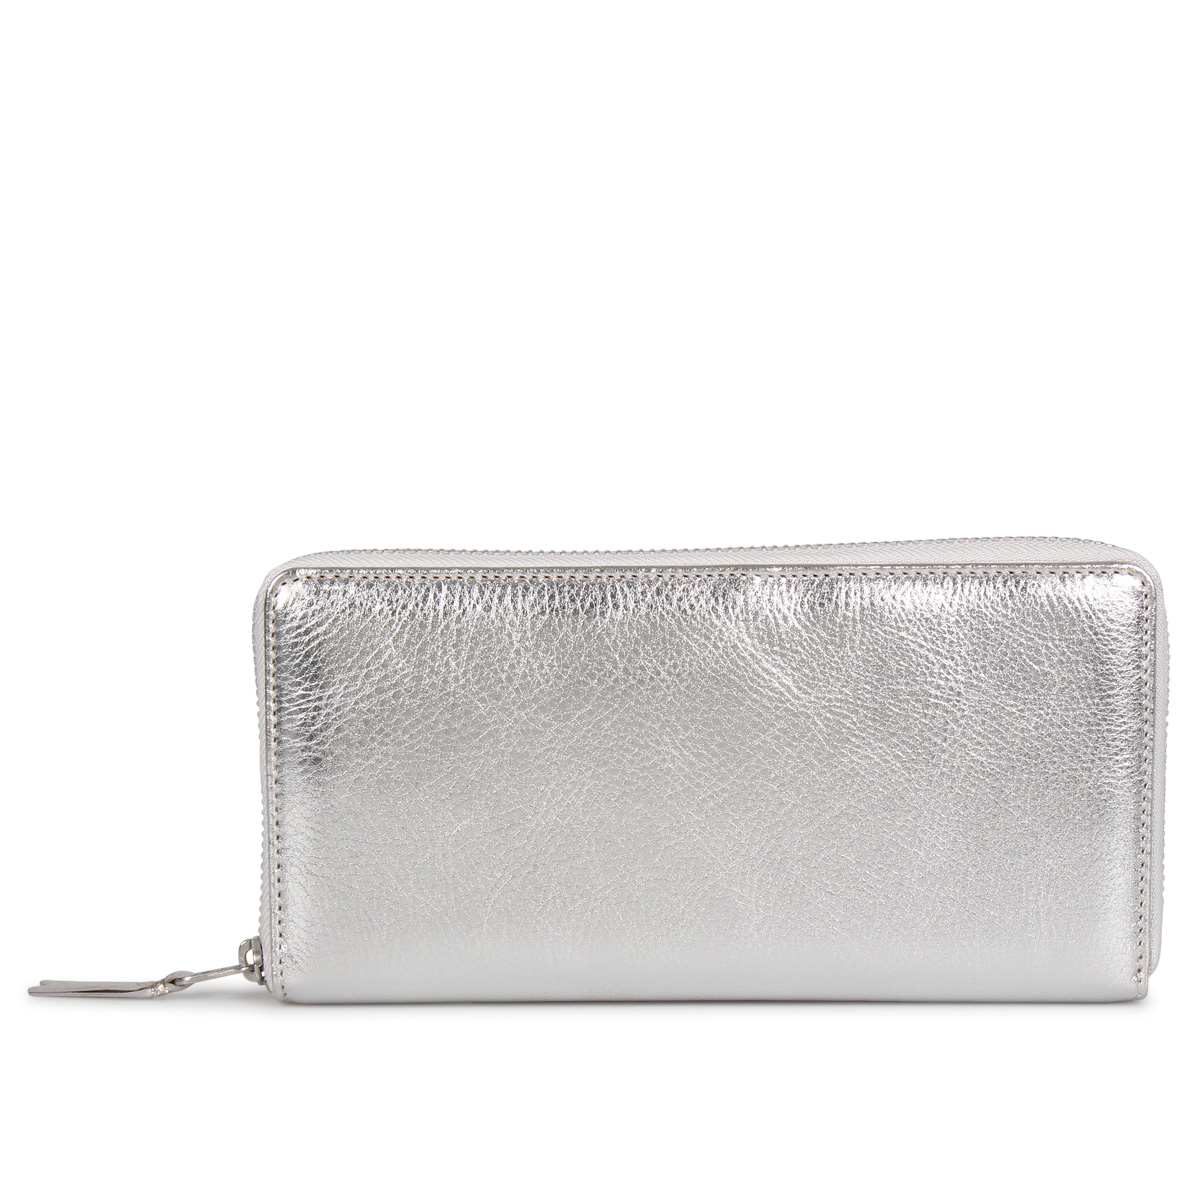 COMME des GARCONS GOLD AND SILVER WALLET コムデギャルソン 財布 長財布 メンズ レディース ラウンドファスナー 本革 シルバー SA0110G